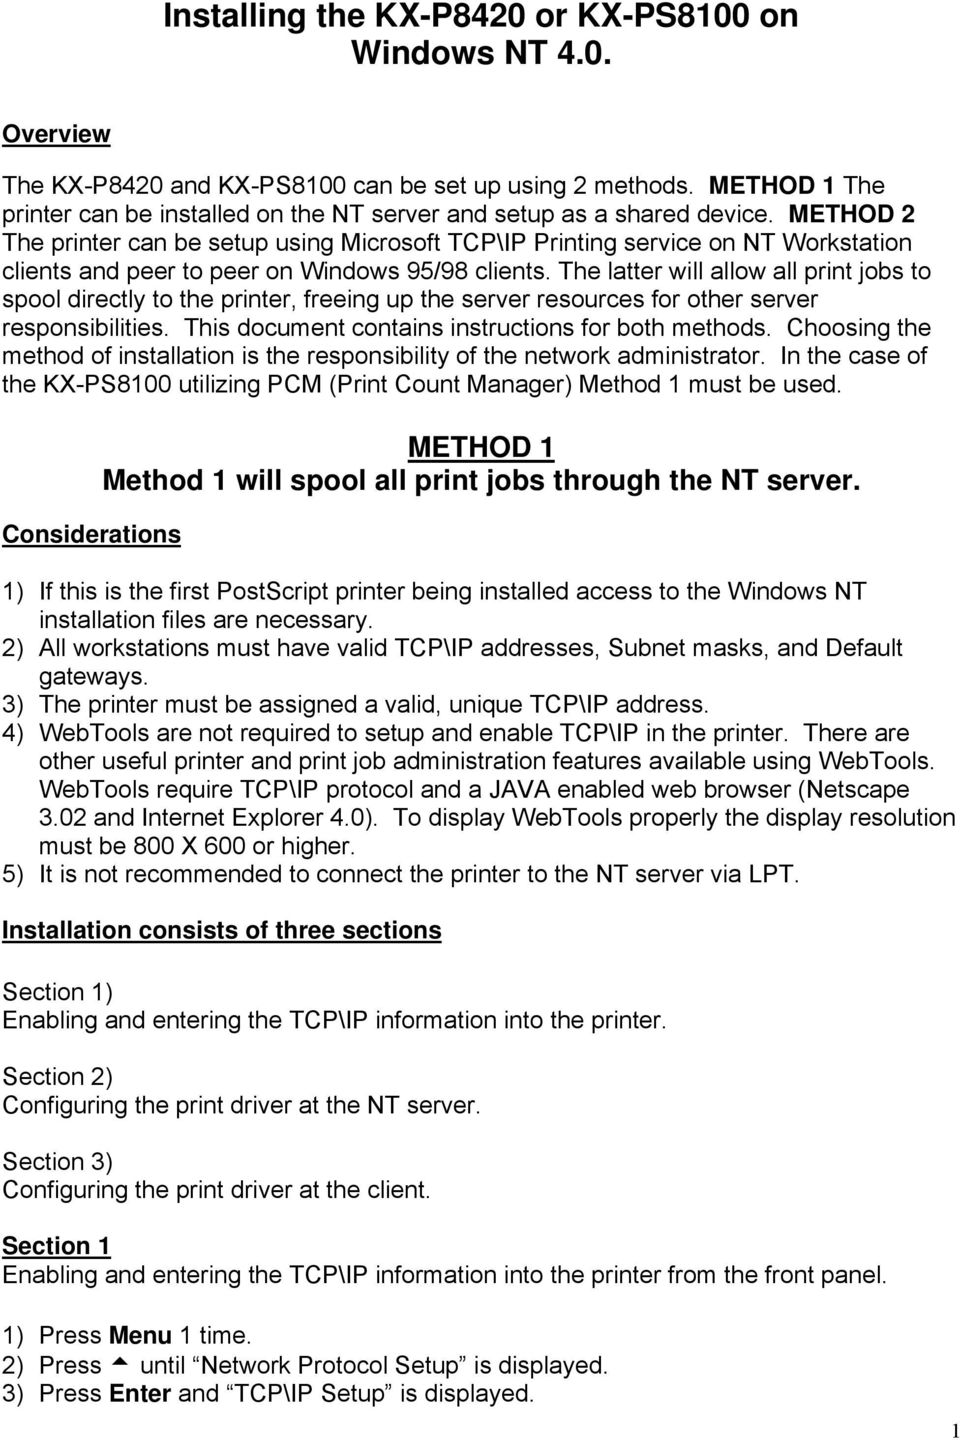 METHOD 2 The printer can be setup using Microsoft TCP\IP Printing service on NT Workstation clients and peer to peer on Windows 95/98 clients.